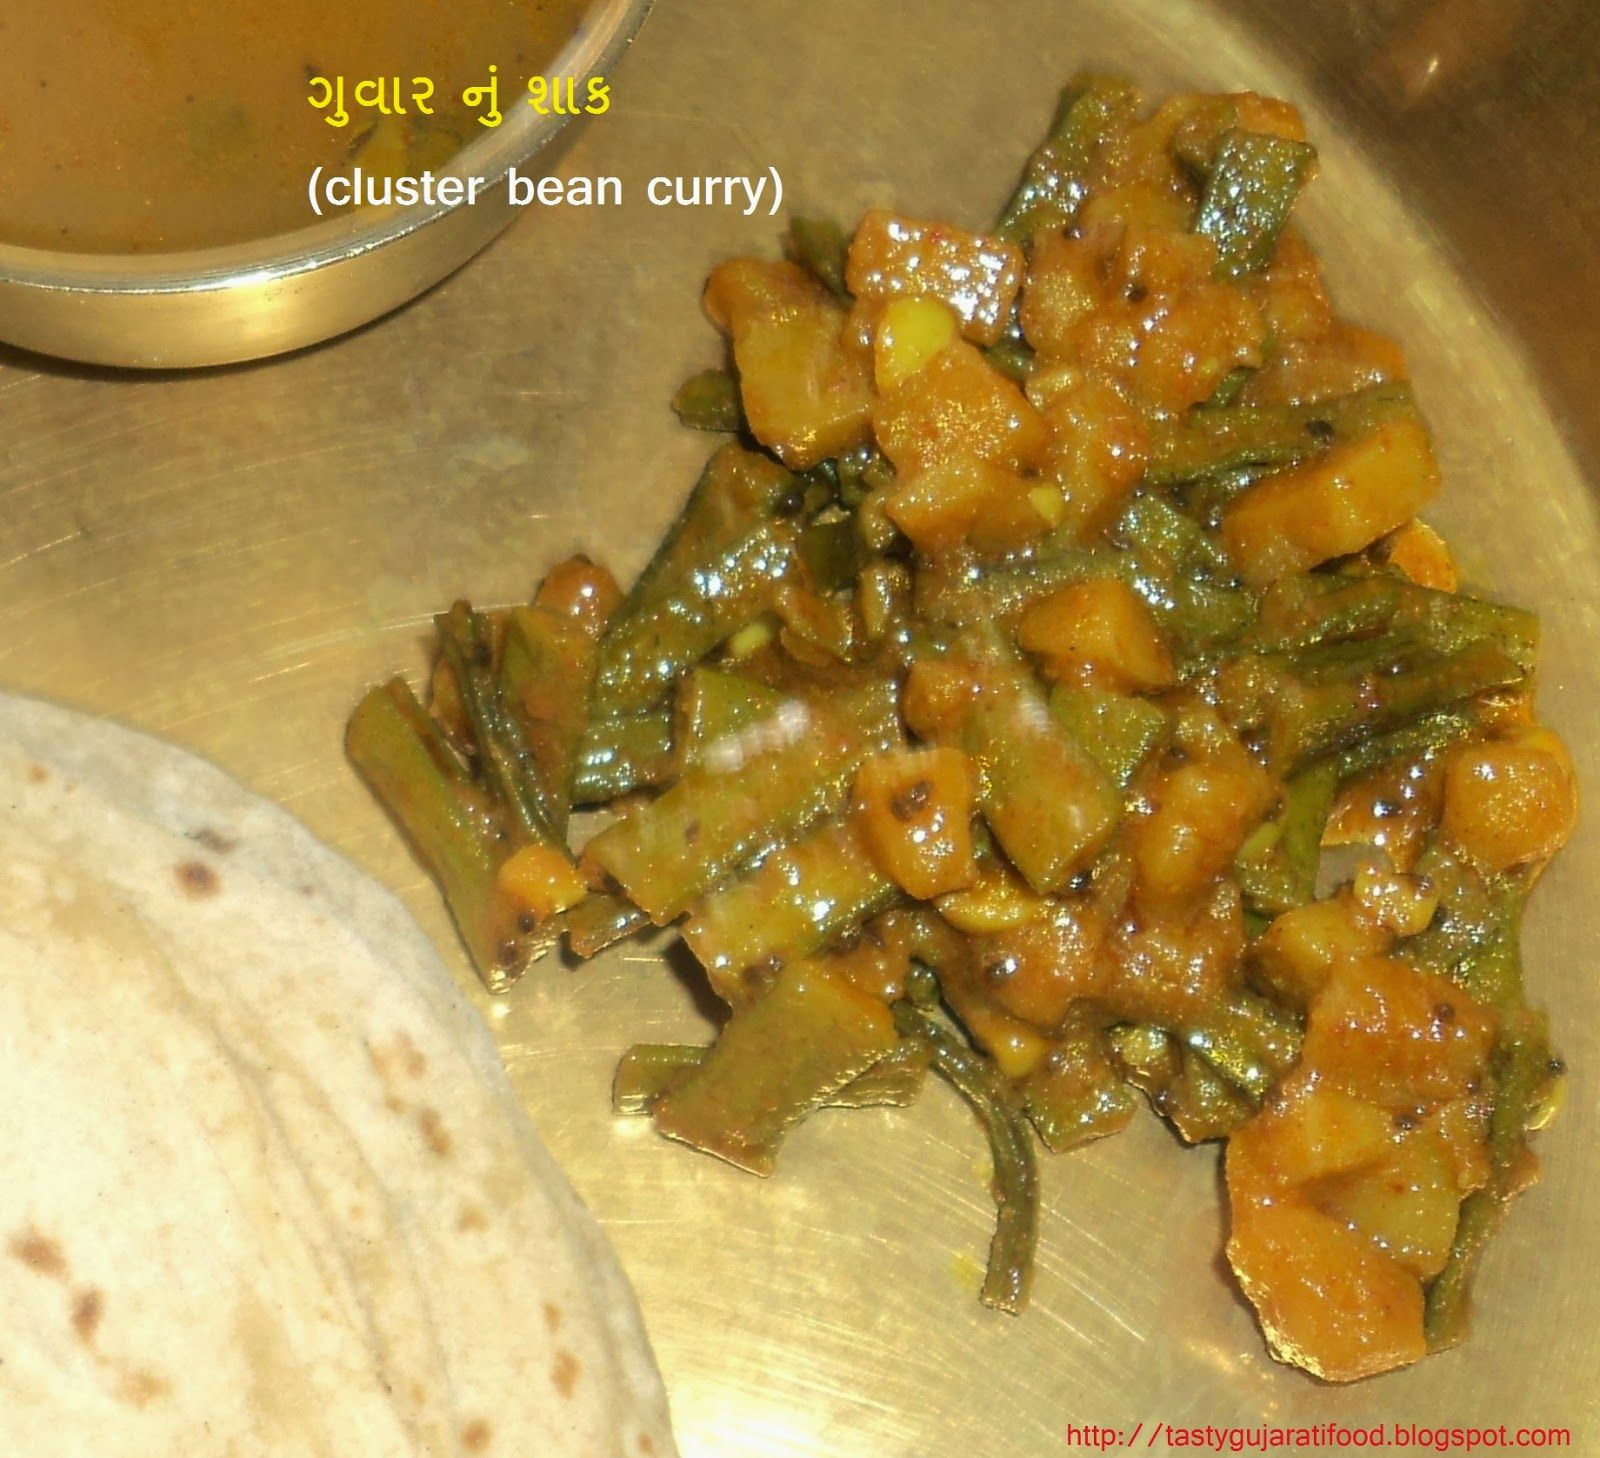 Delicious guvar bataka nu shaak recipe in gujarati language by delicious guvar bataka nu shaak recipe in gujarati language by tasty gujarati food blog forumfinder Choice Image